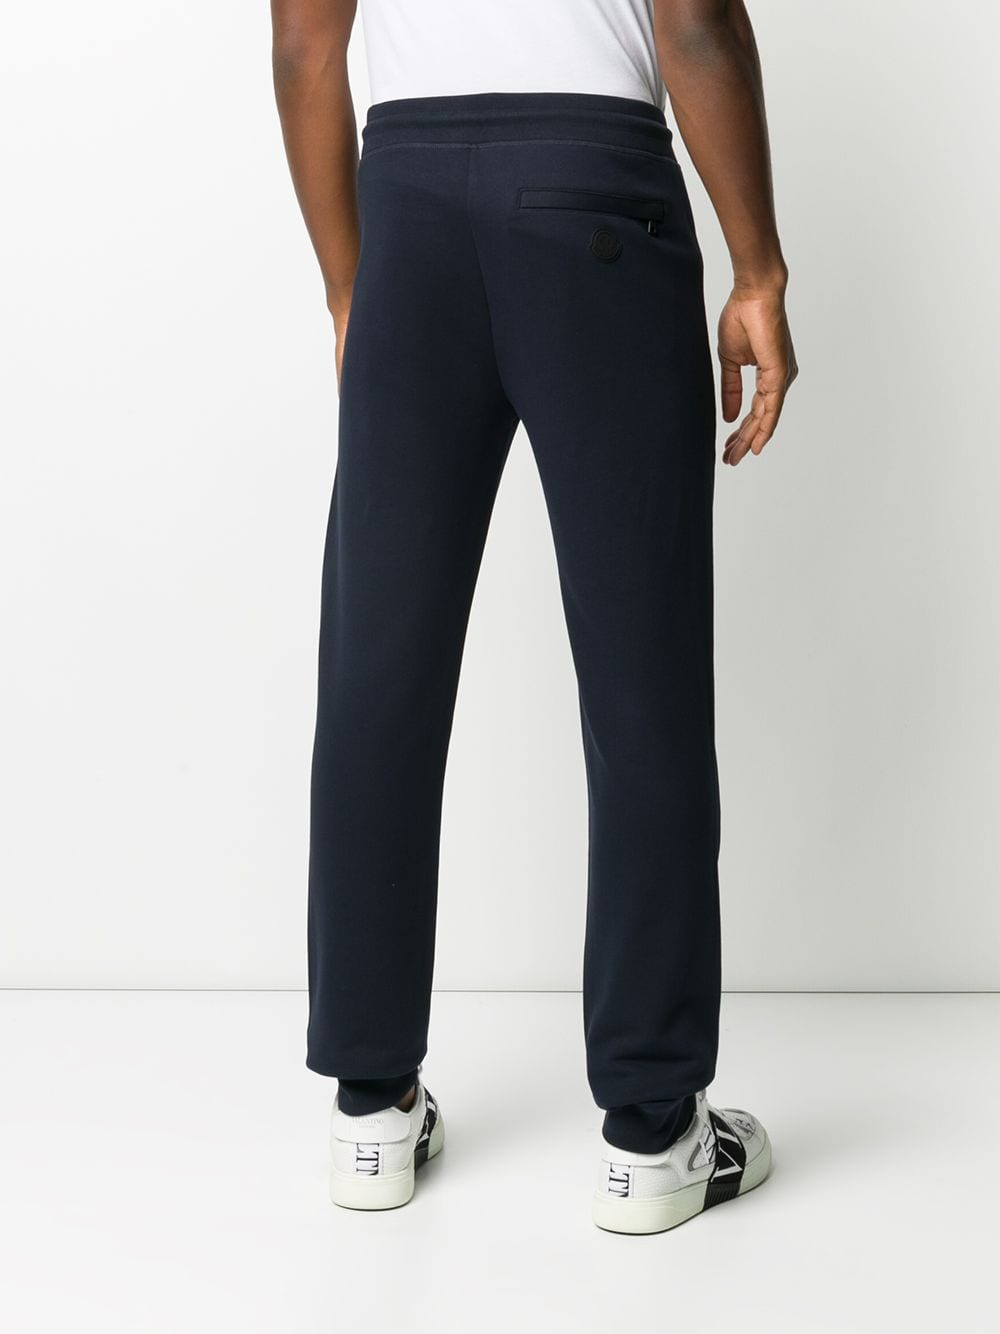 Blue white and red cotton stripe-detail track pants  MONCLER |  | 8H710-00-V8148778